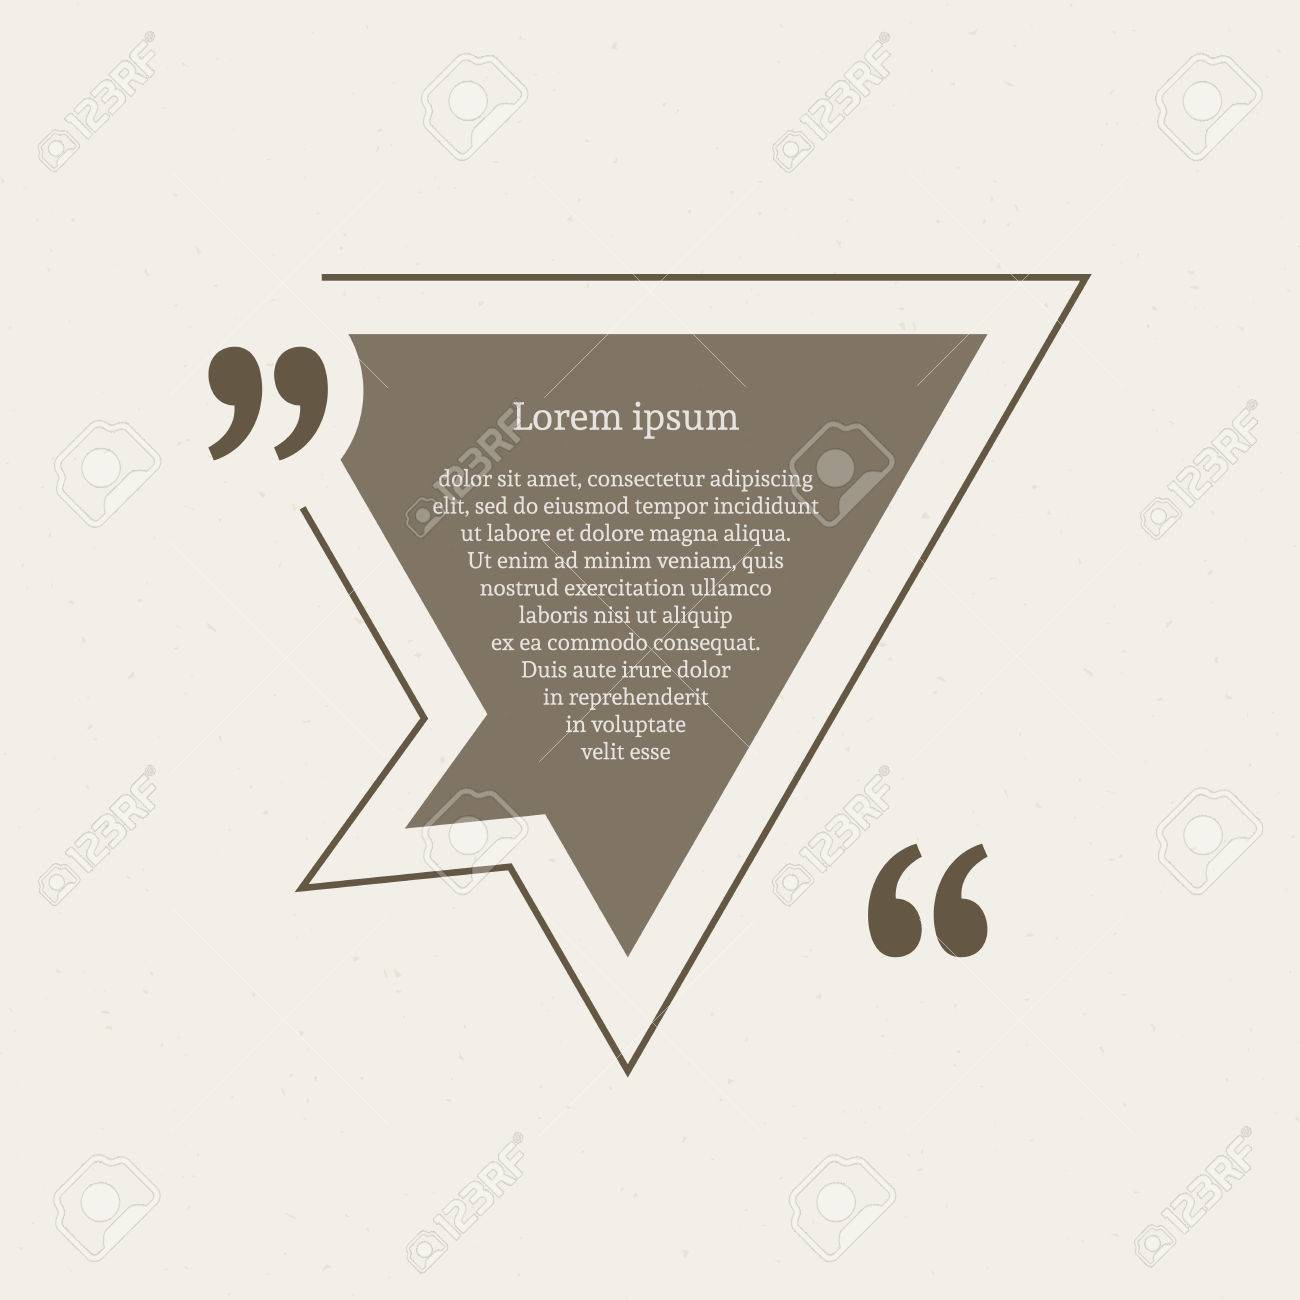 Quotation mark speech bubble empty quote blank citation template quotation mark speech bubble empty quote blank citation template triangle design element for business reheart Images